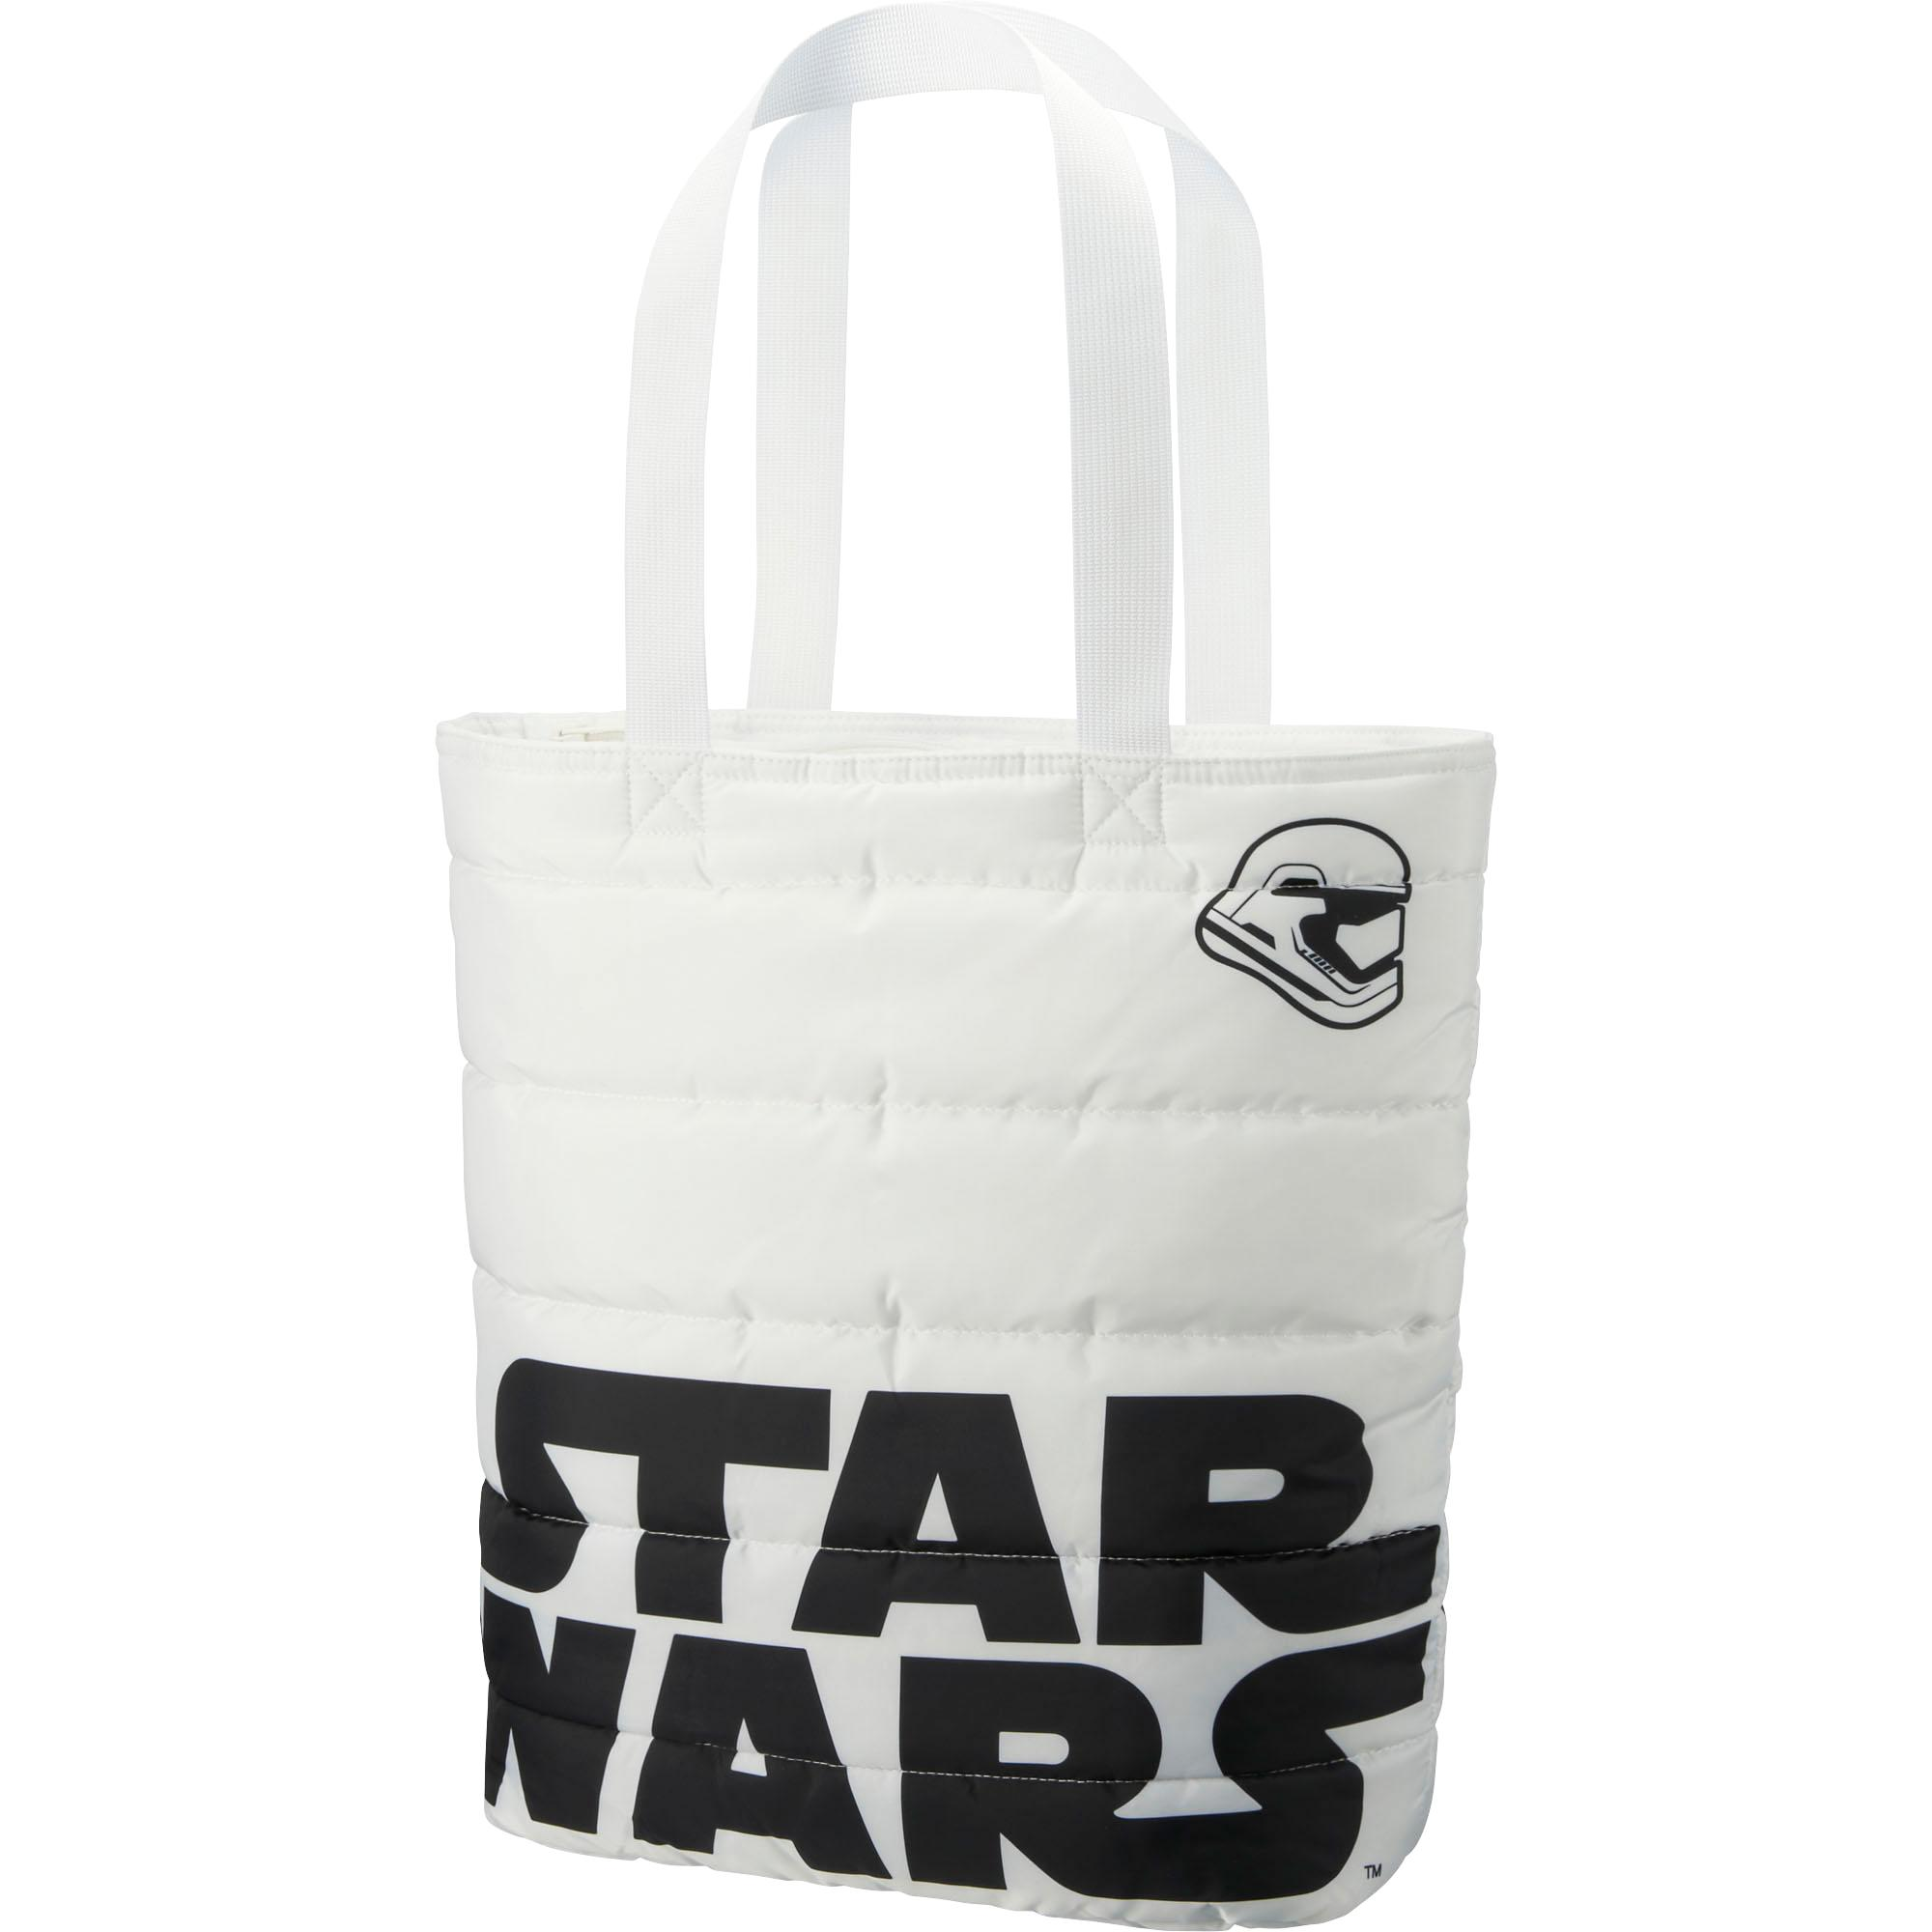 Uniqlo Star Wars The Force Awakens Padded Tote Bag